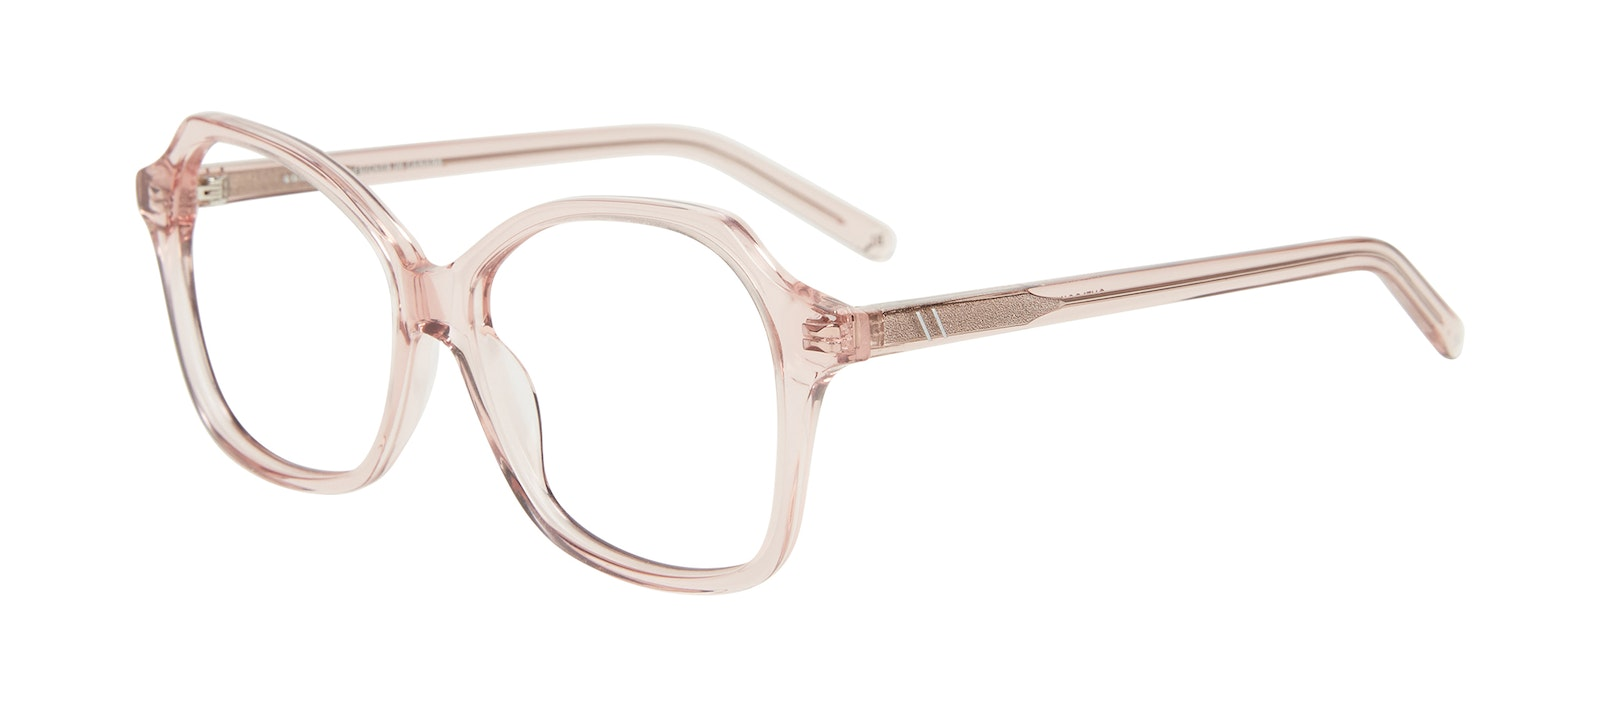 Affordable Fashion Glasses Square Eyeglasses Women Outlook Pink Tilt